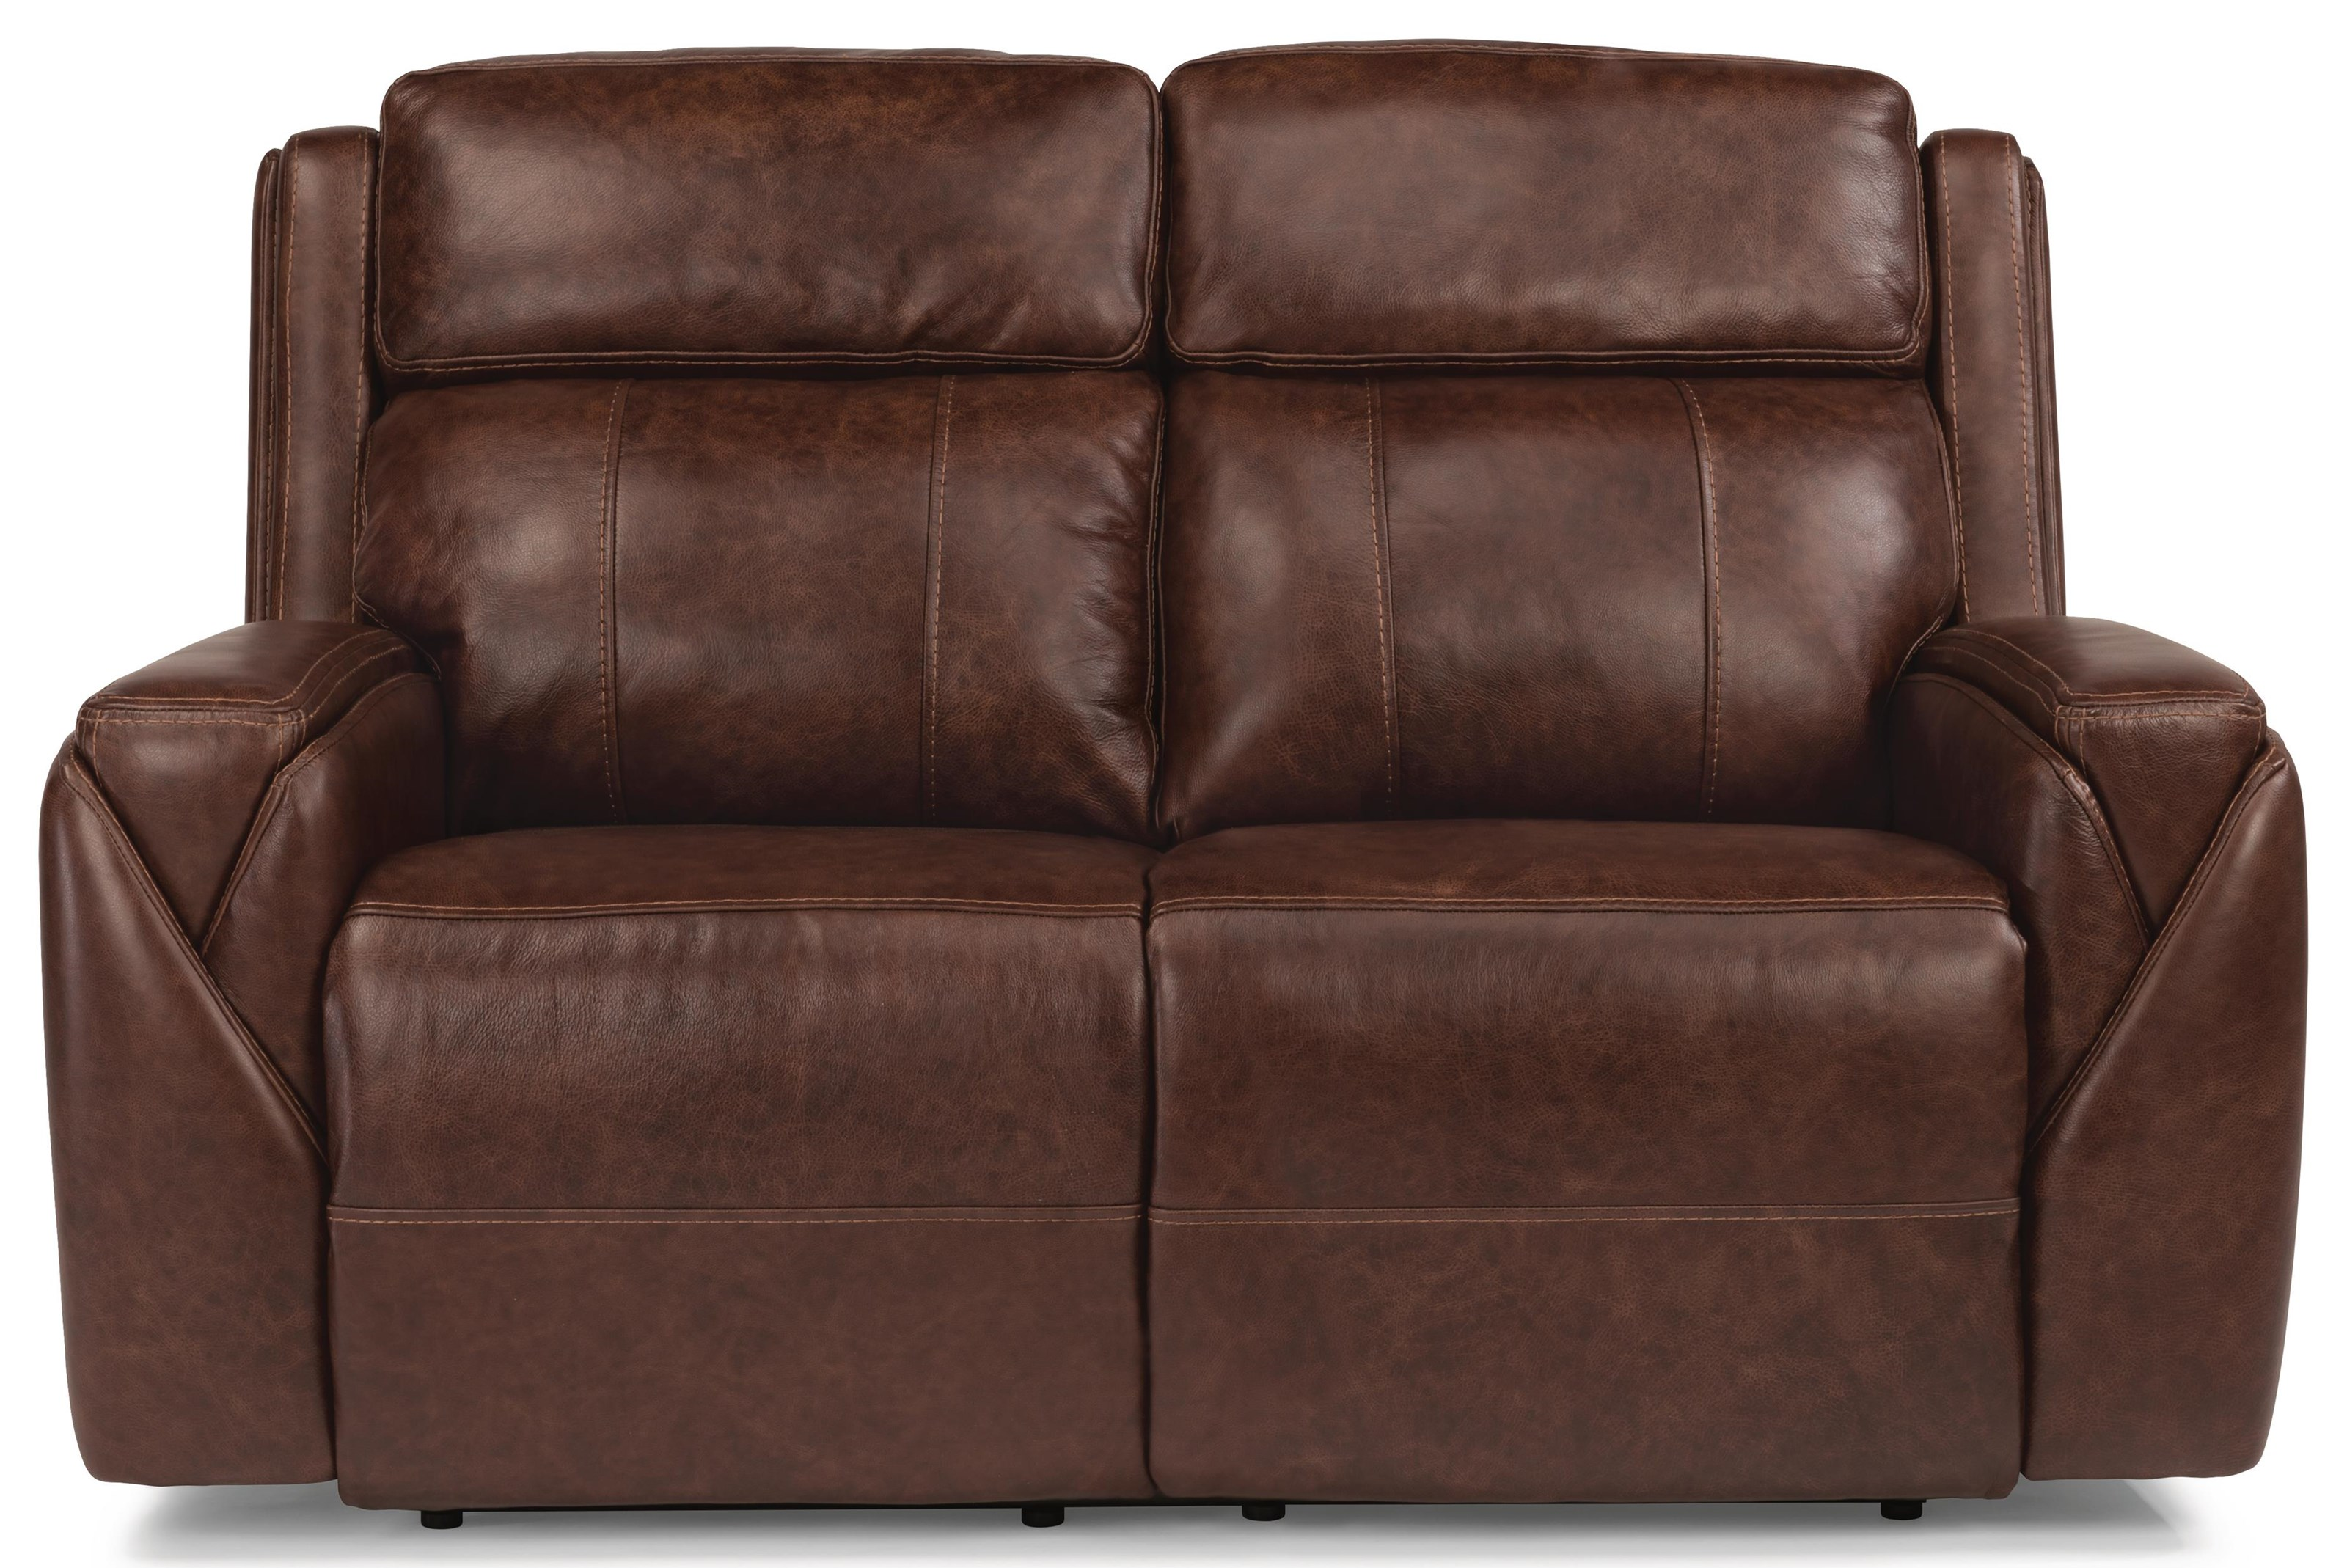 flexsteel double reclining sofa reviews leather tufted set laudes miller ...